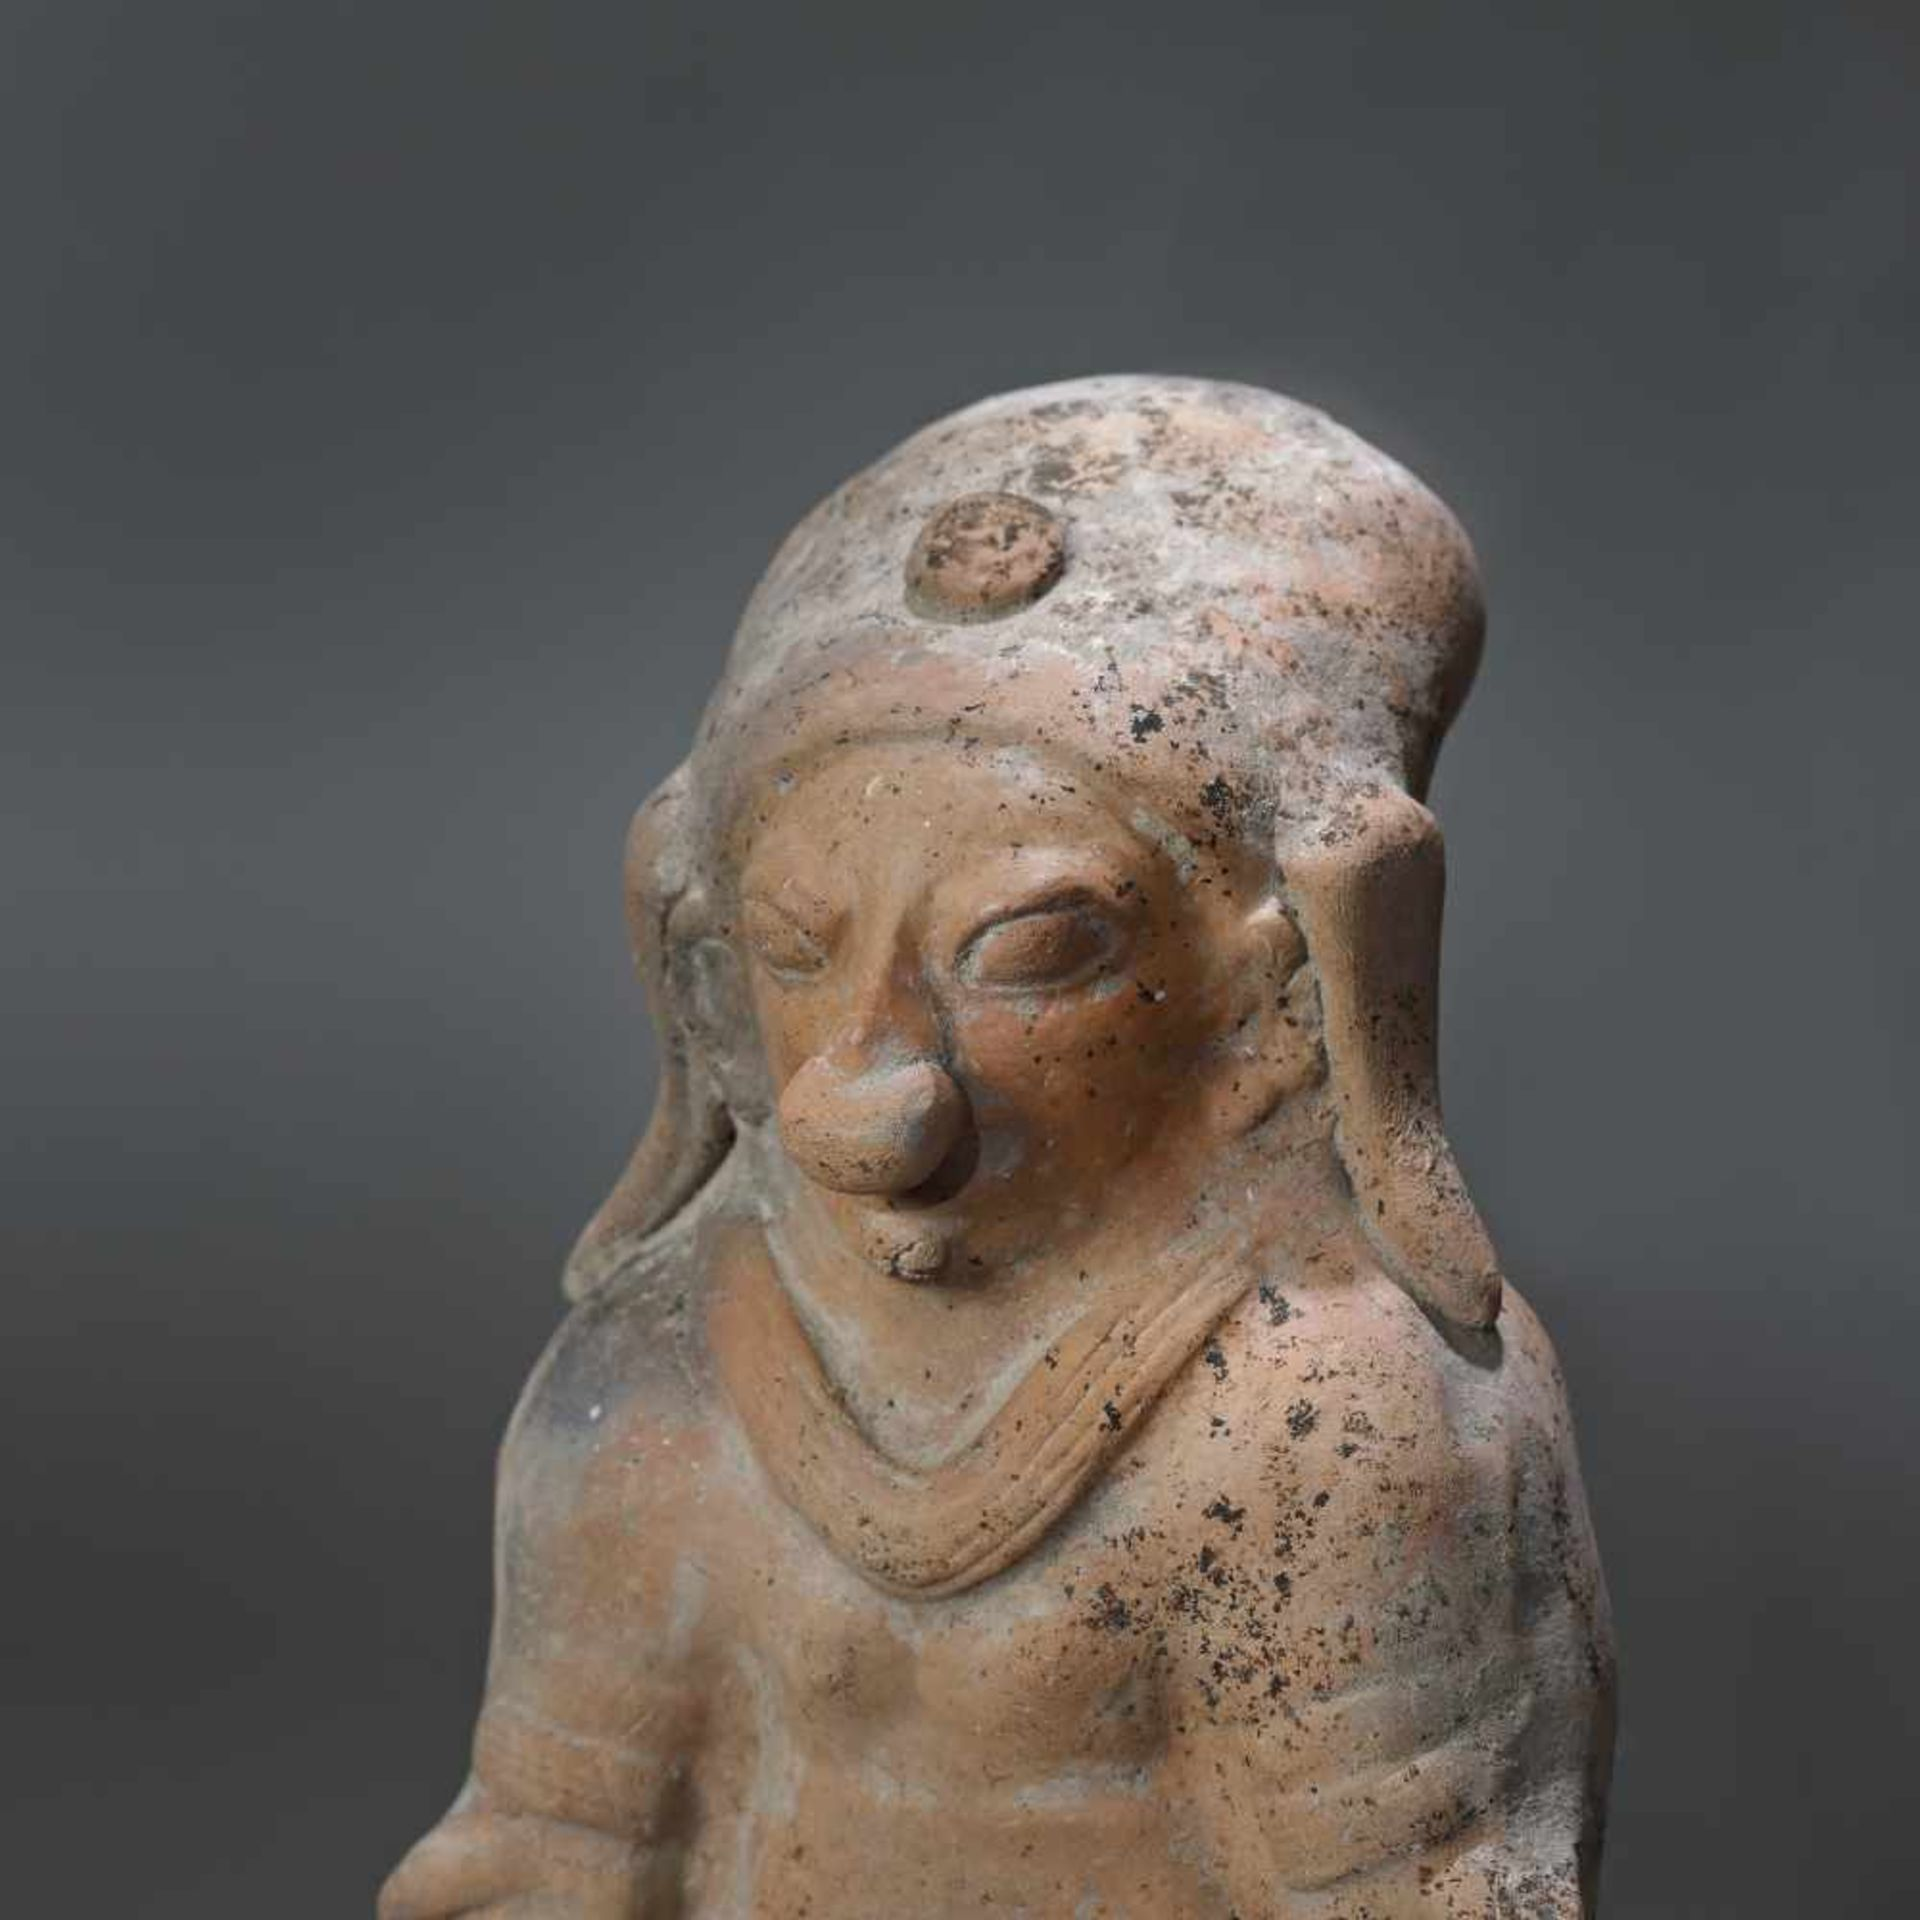 Terracotta statuette, depicting a female figure, Jama Coaque culture, Ecuador, approx. 1,700 years o - Bild 2 aus 5